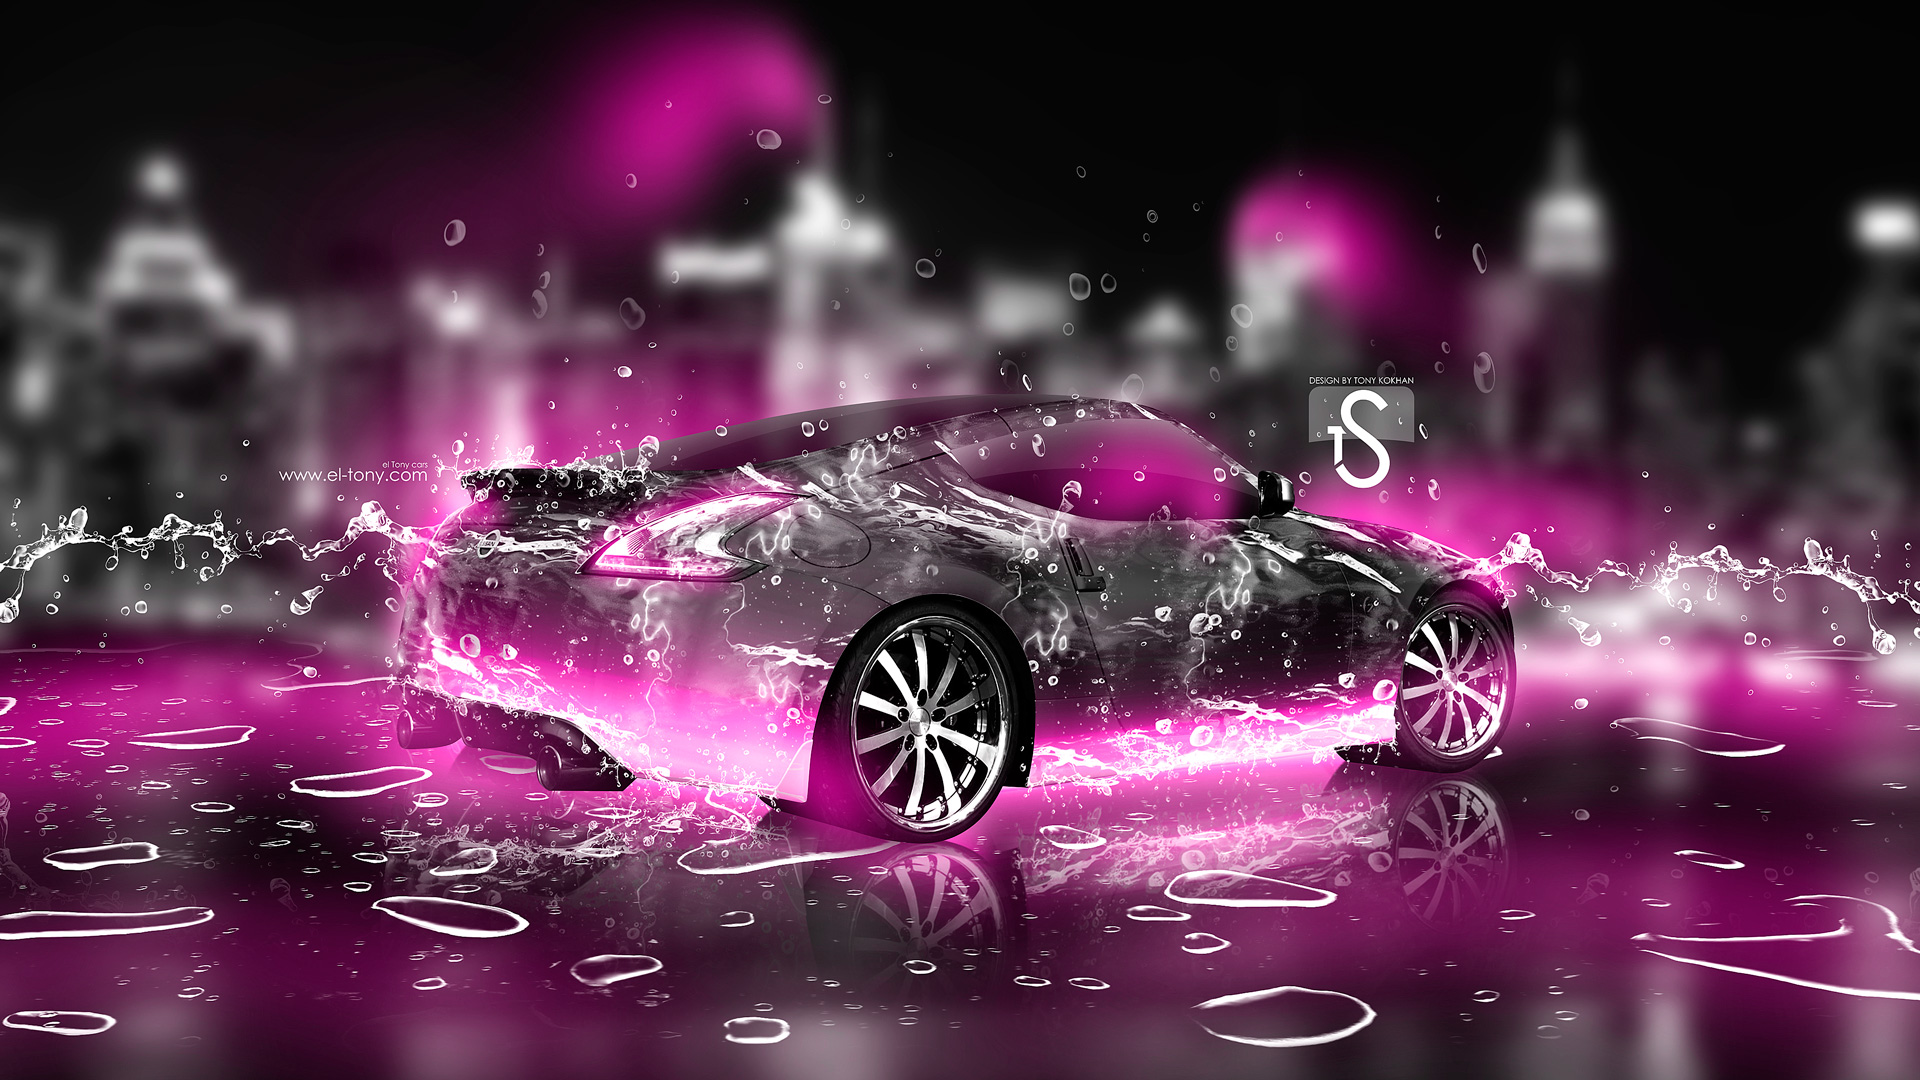 ... Nissan 370Z Ice Water City Car 2013 Pink